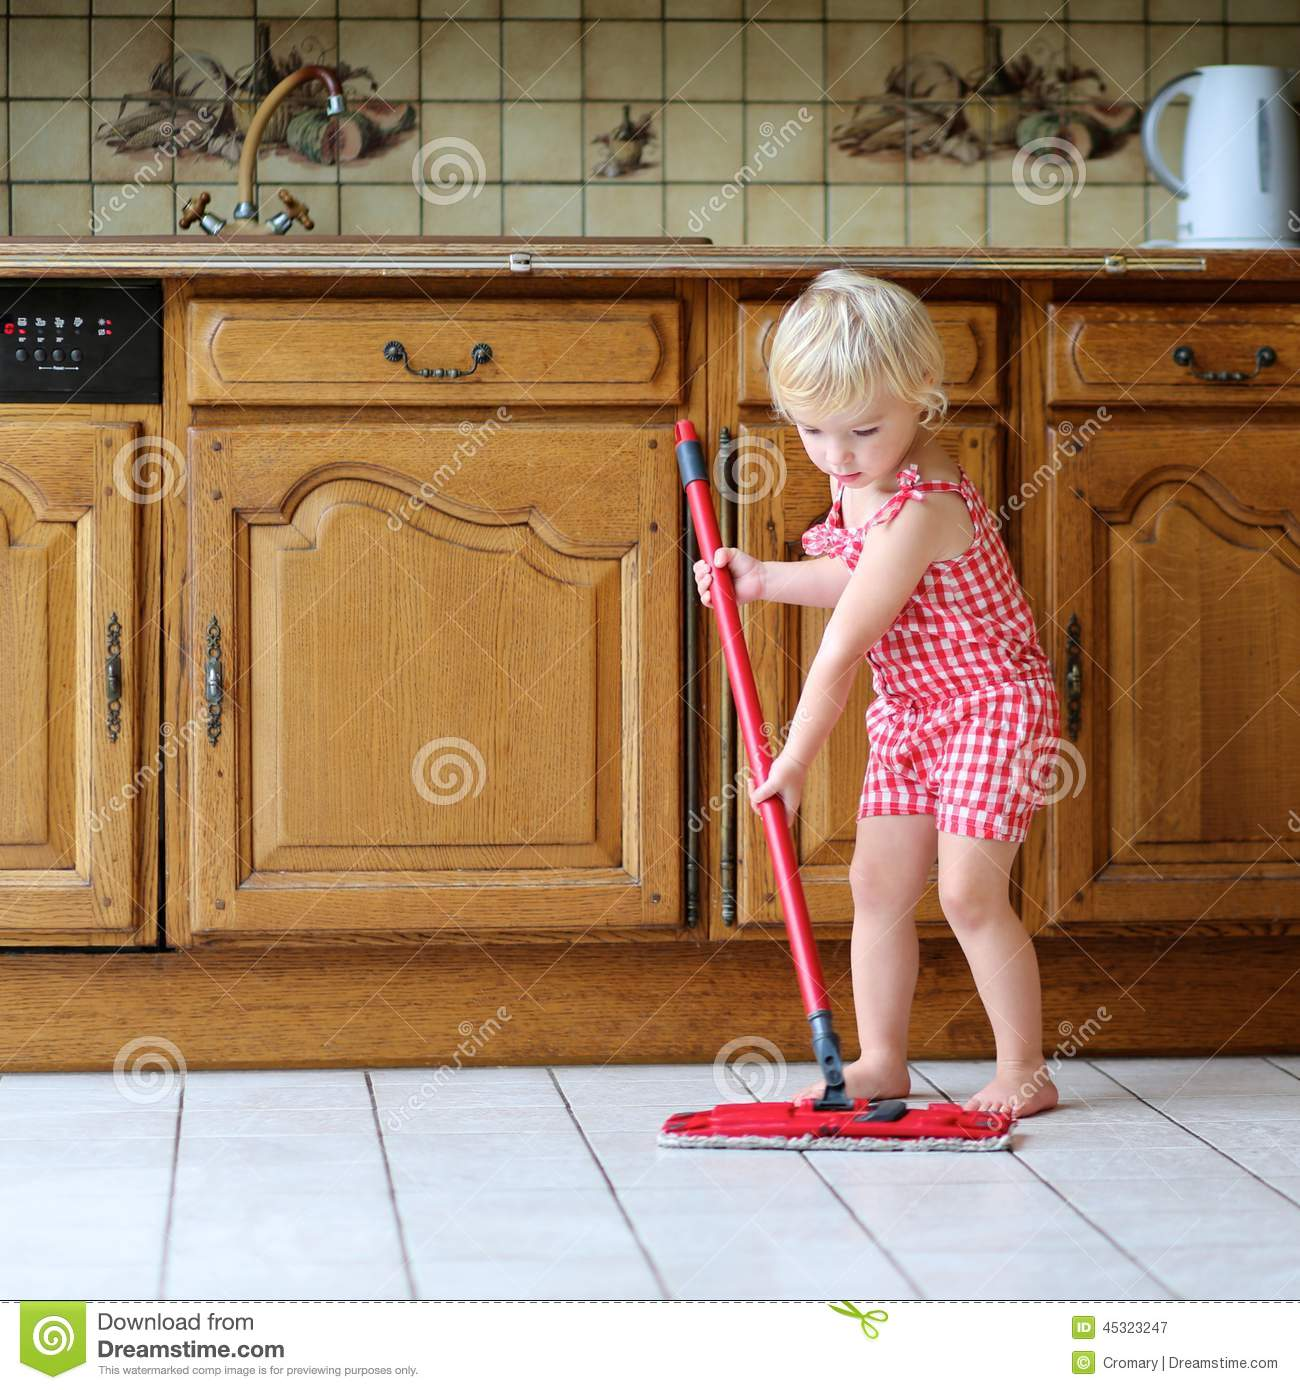 Kitchen Floor Cleaners Toddler Girl Mopping Kitchen Floor Stock Photo Image 45323247